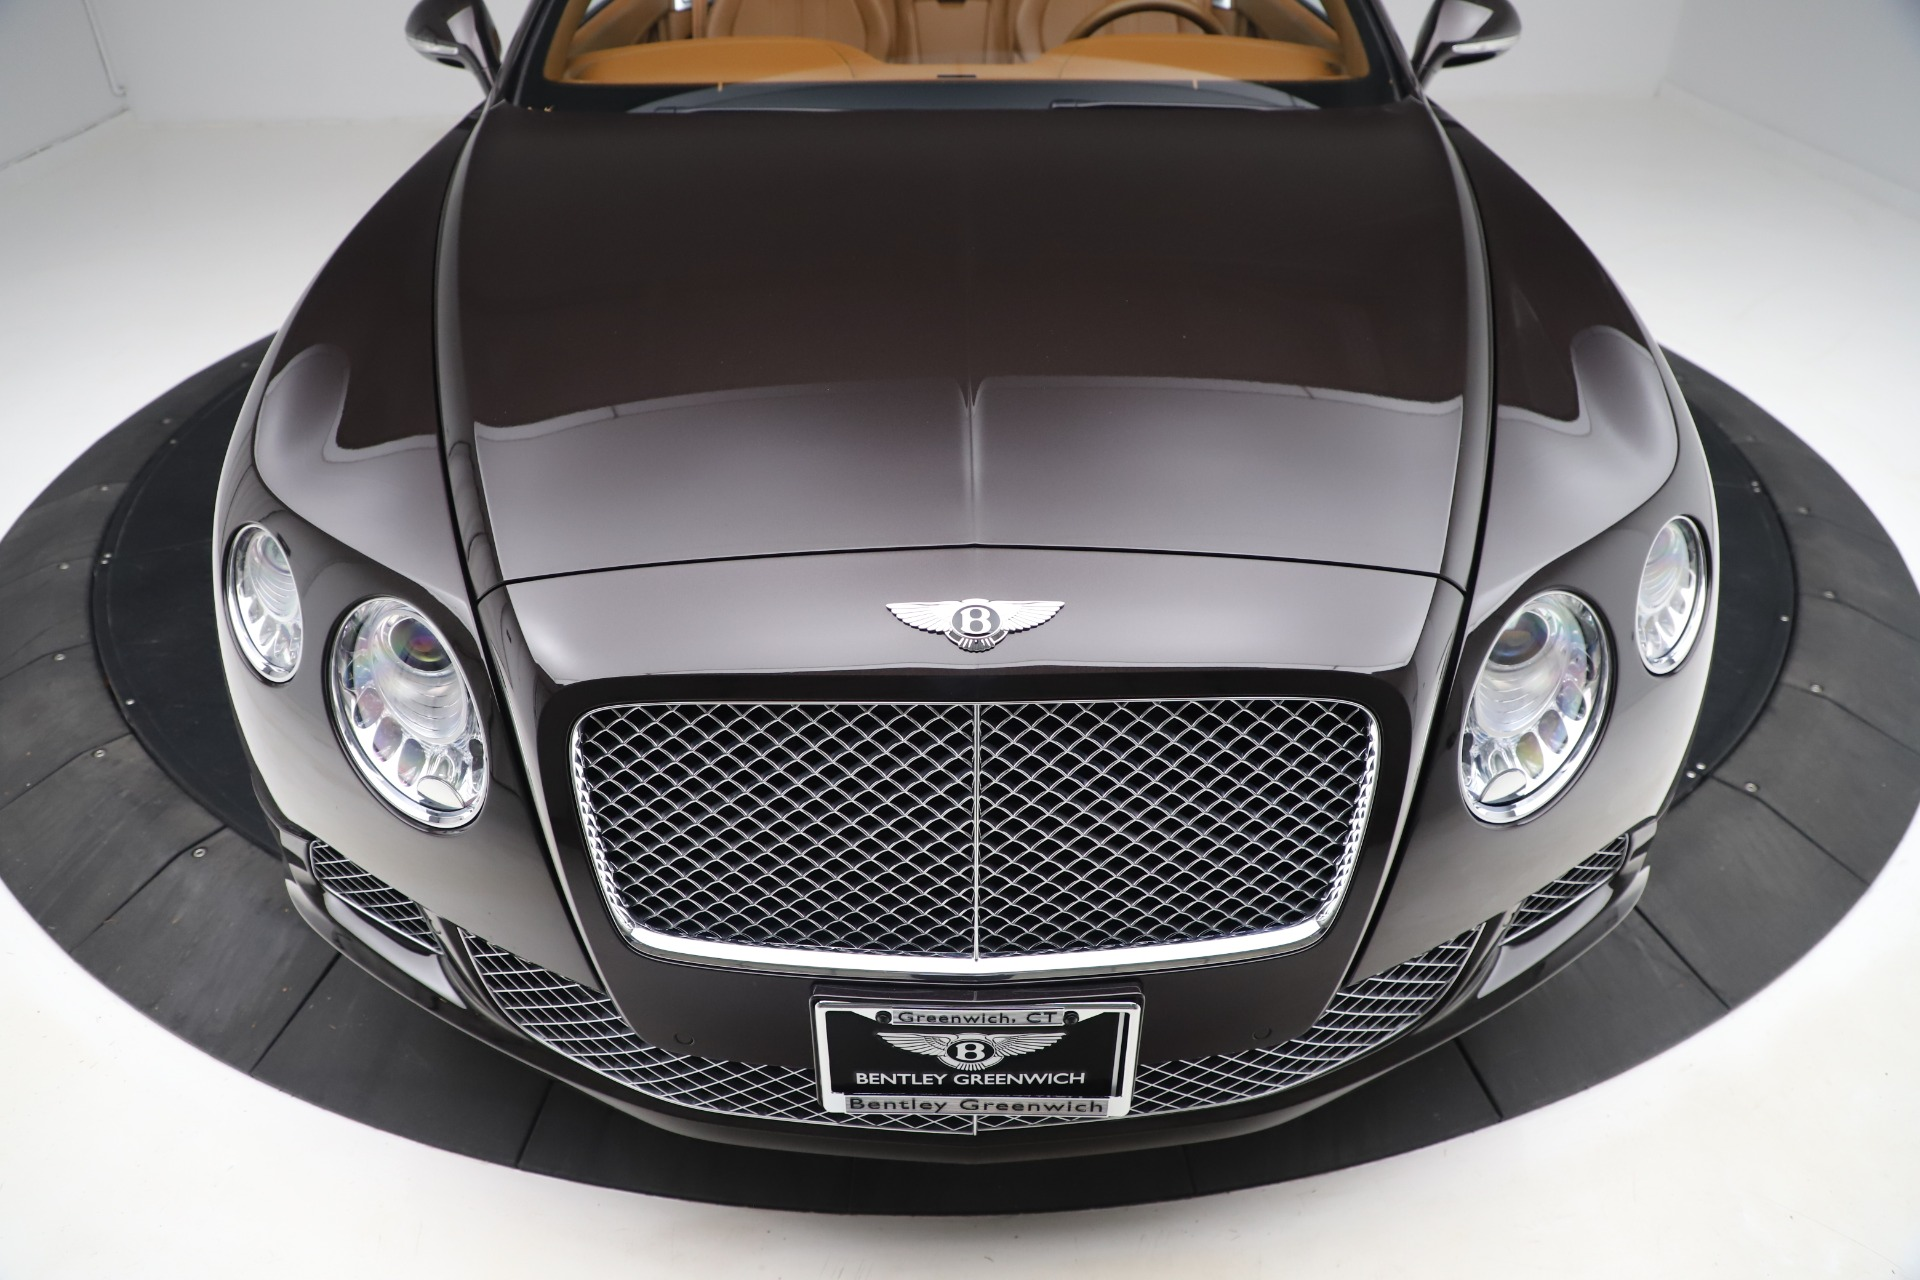 Used 2013 Bentley Continental GT W12 For Sale In Westport, CT 3505_p19